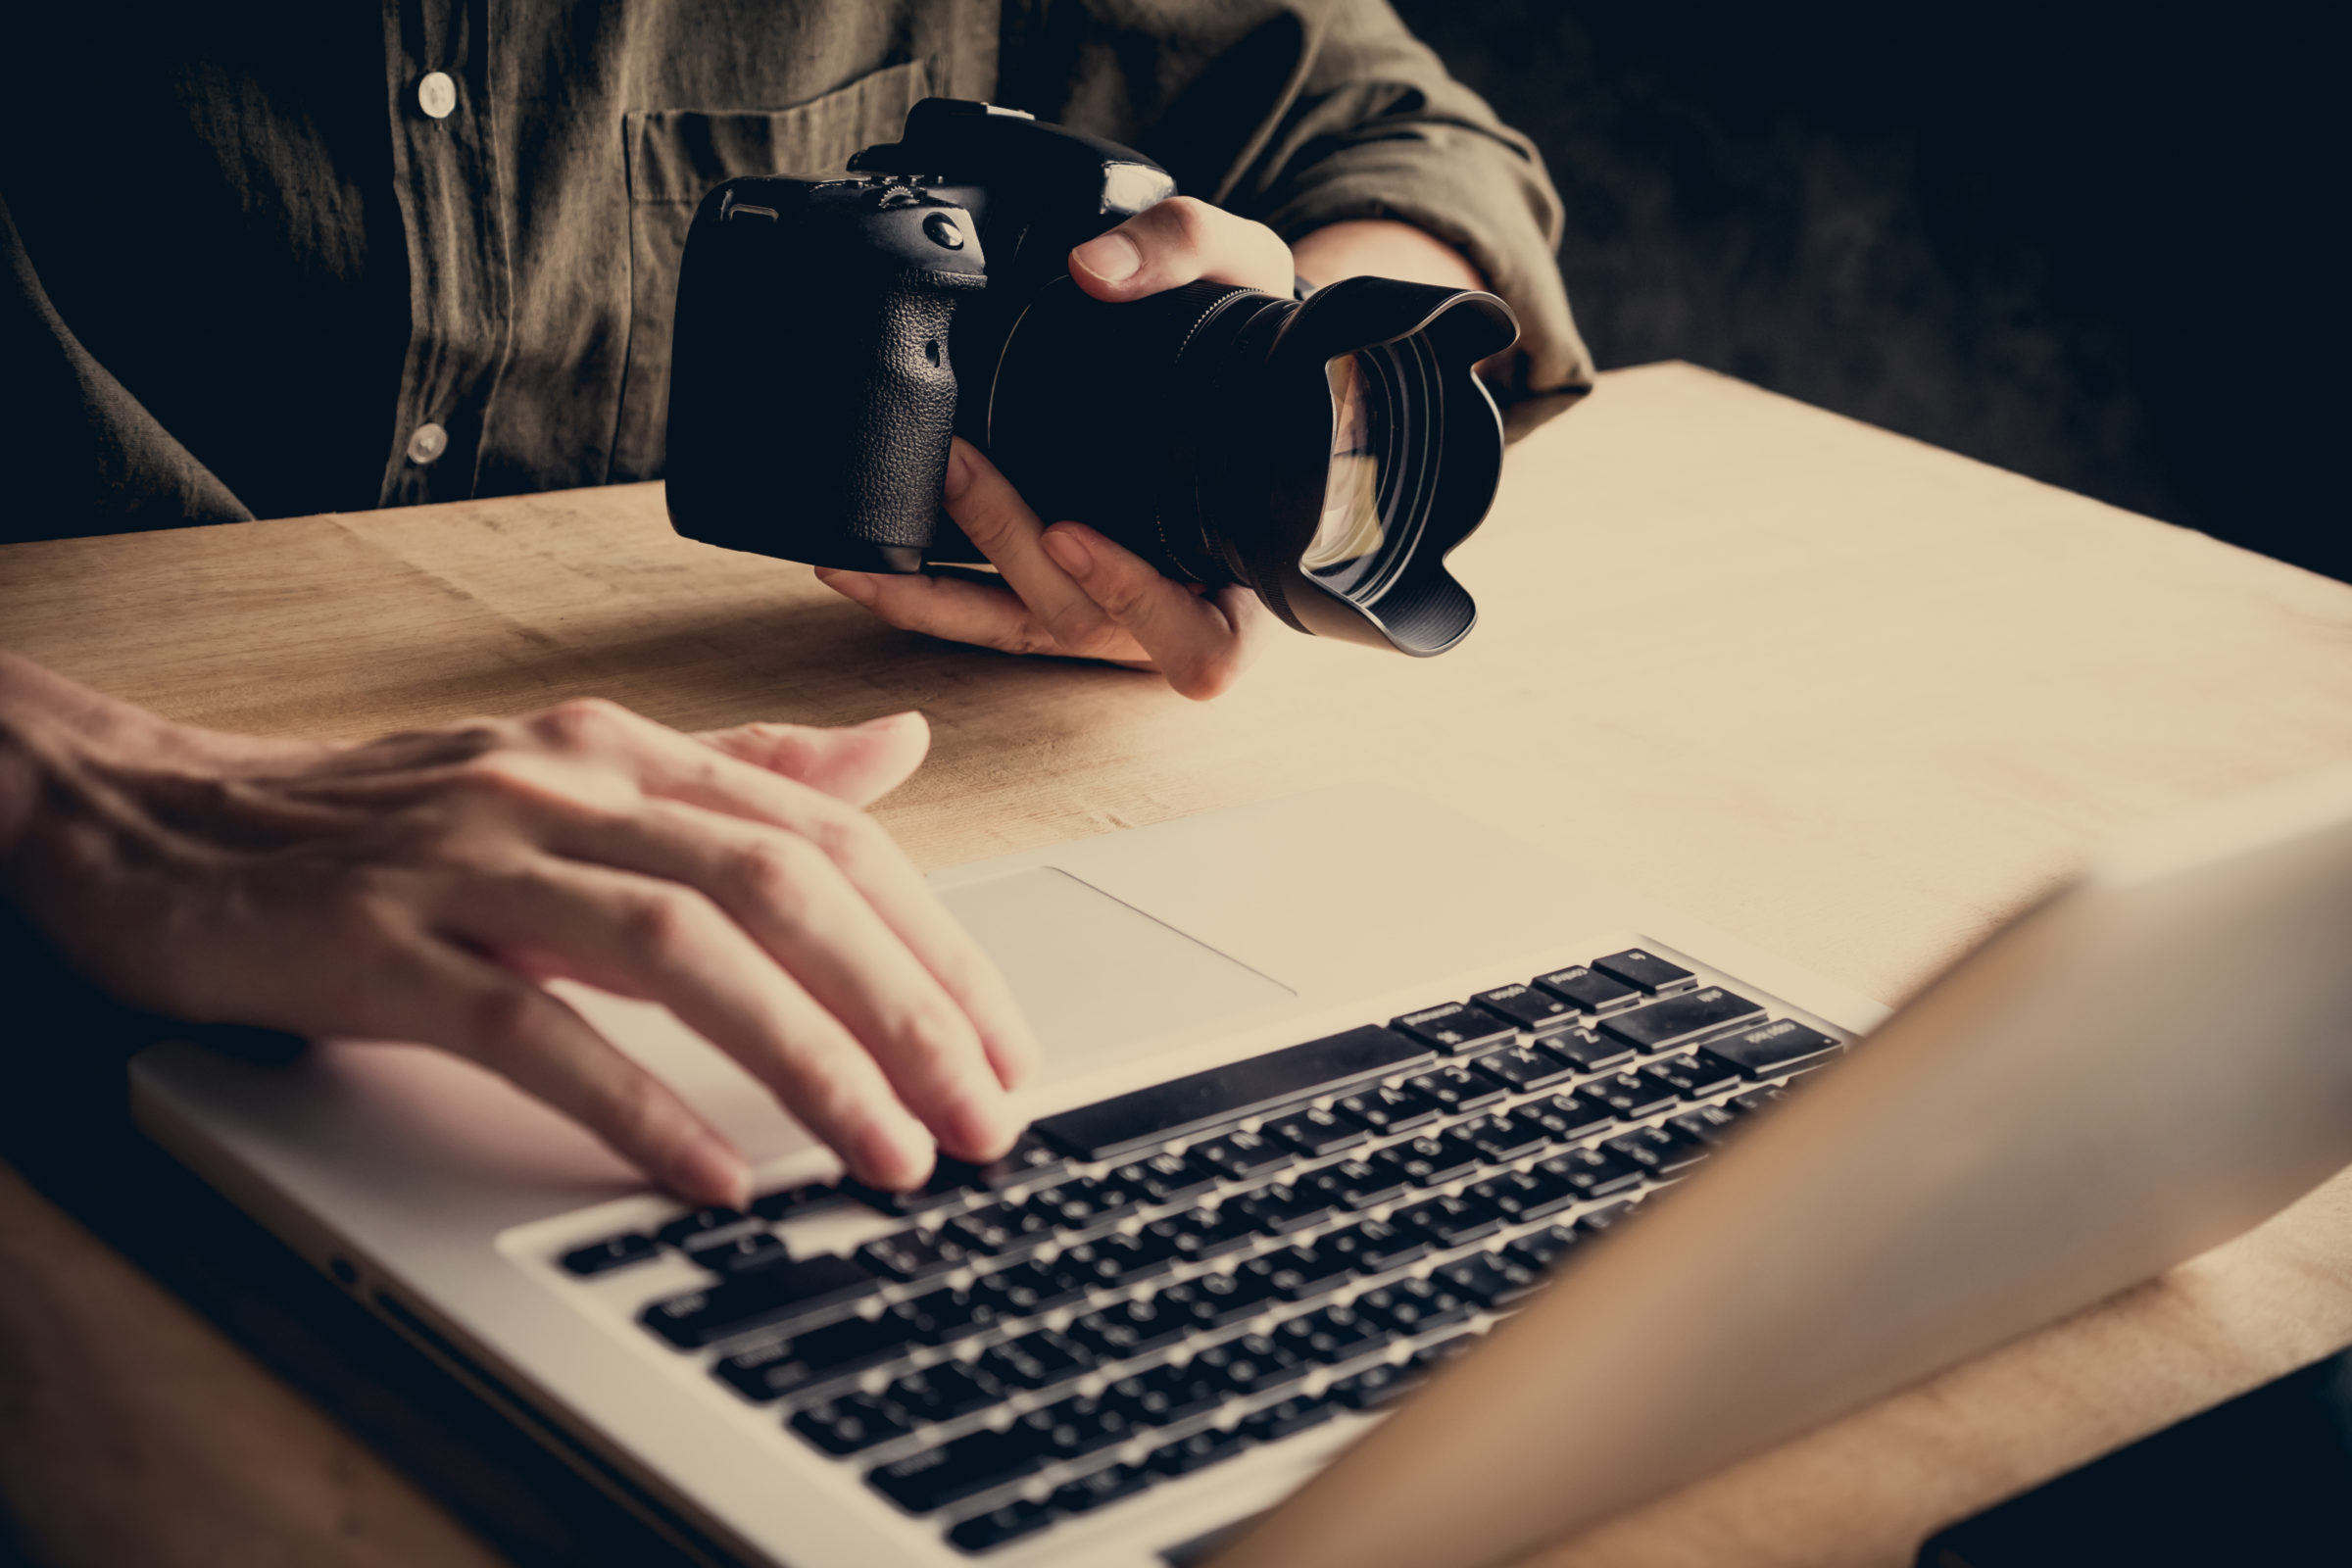 close up of photographer editing his images on lap 2021 07 22 03 28 25 utc